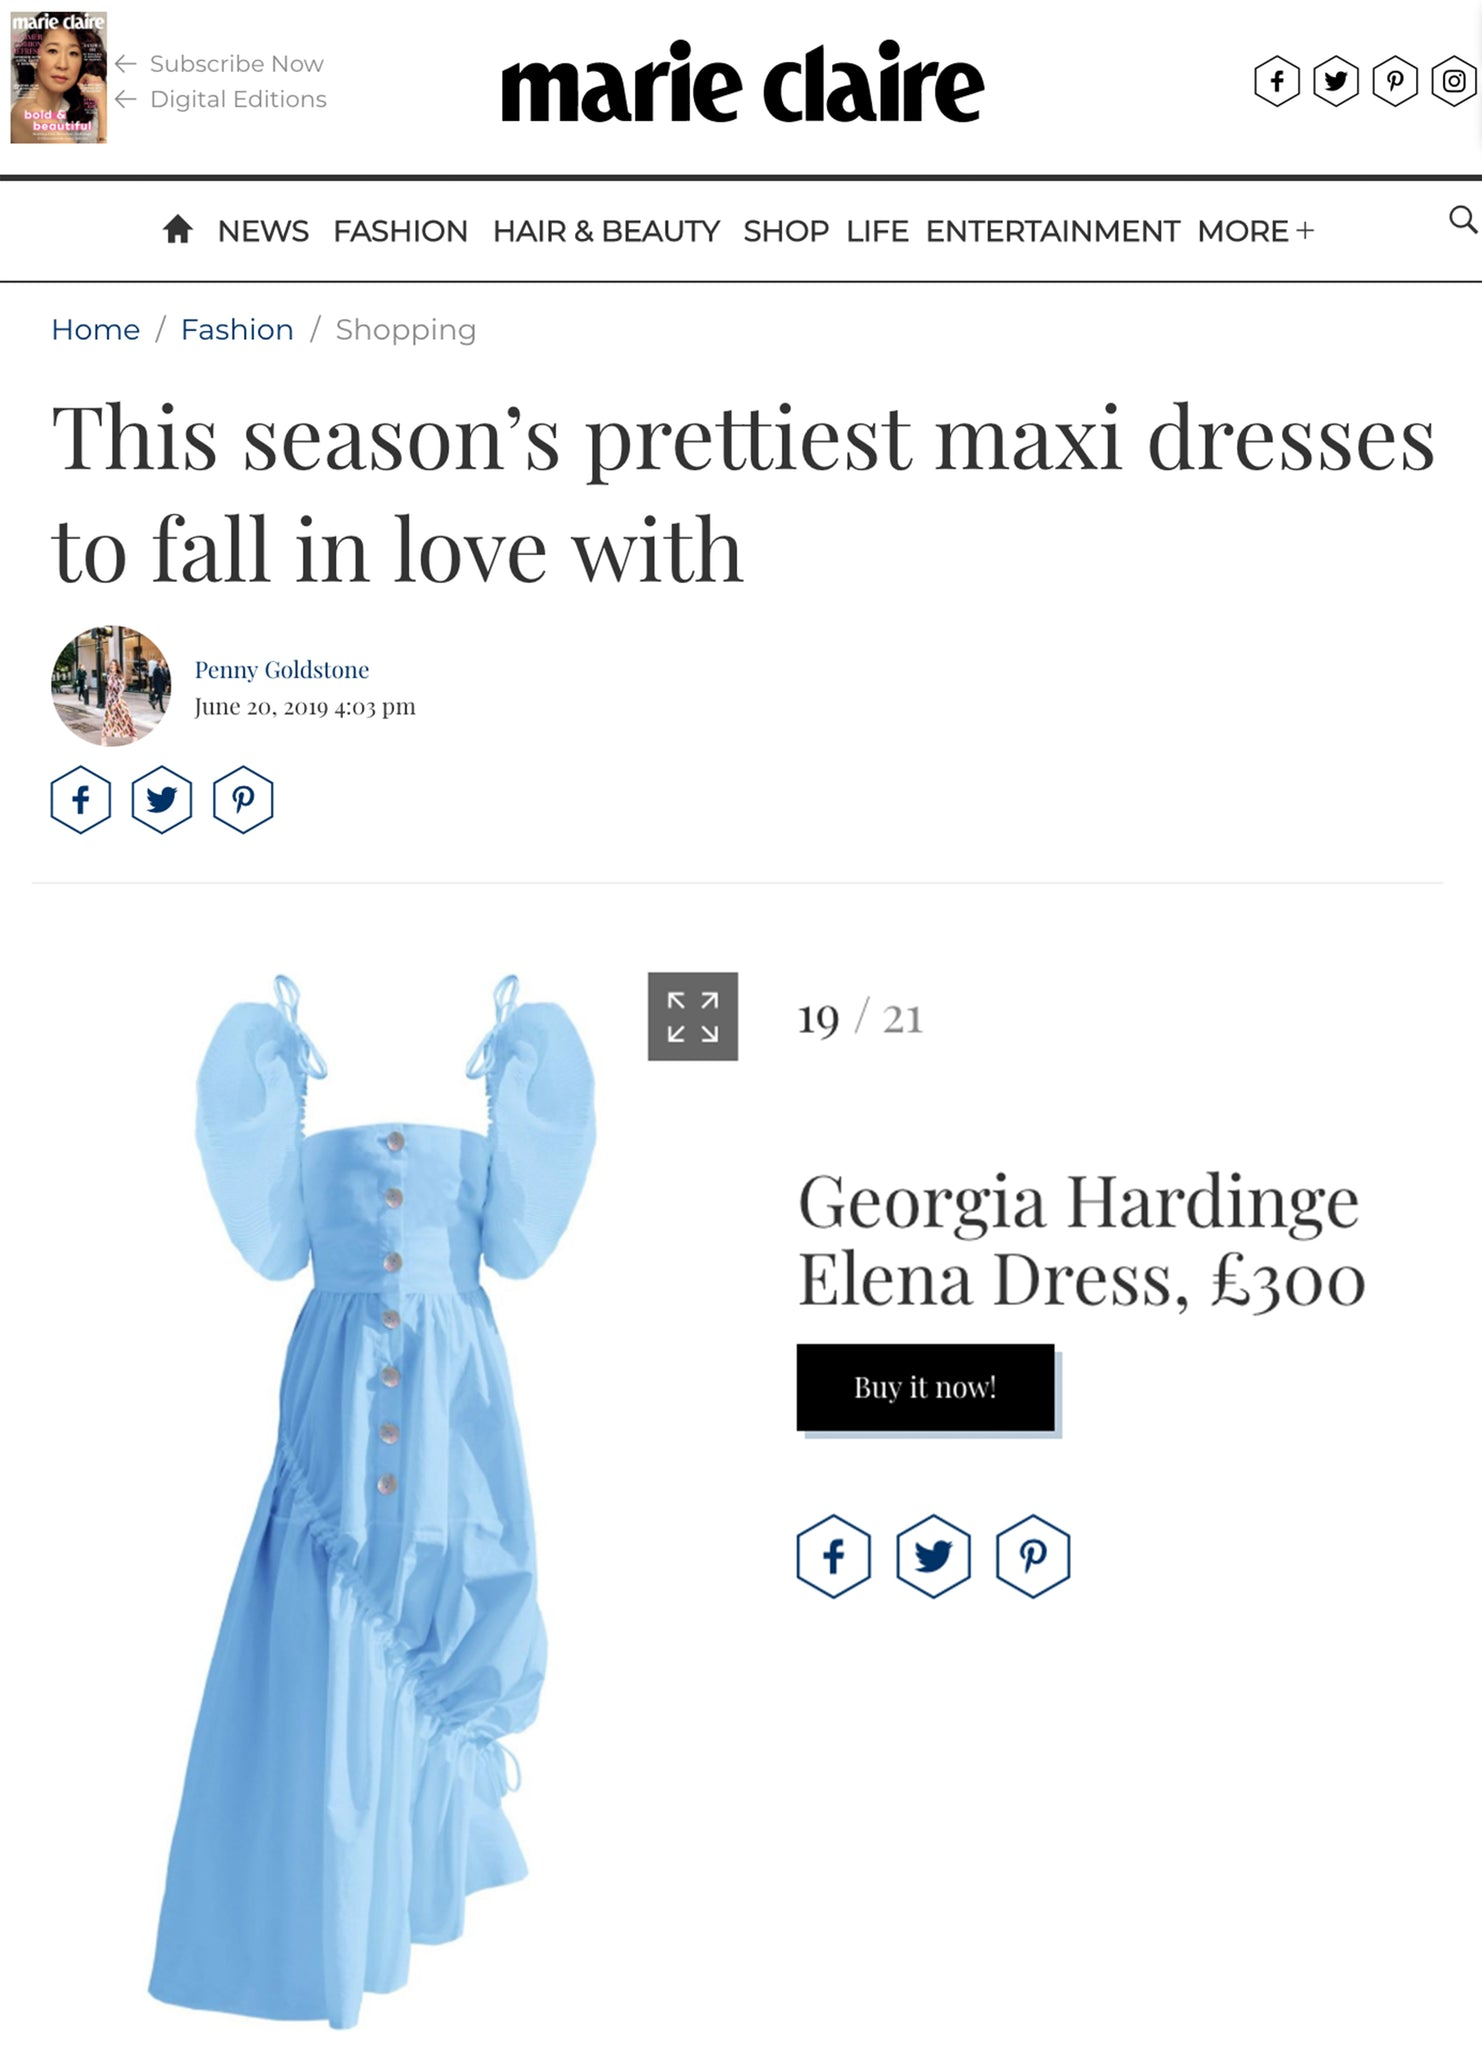 marie claire blue dress georgia hardinge